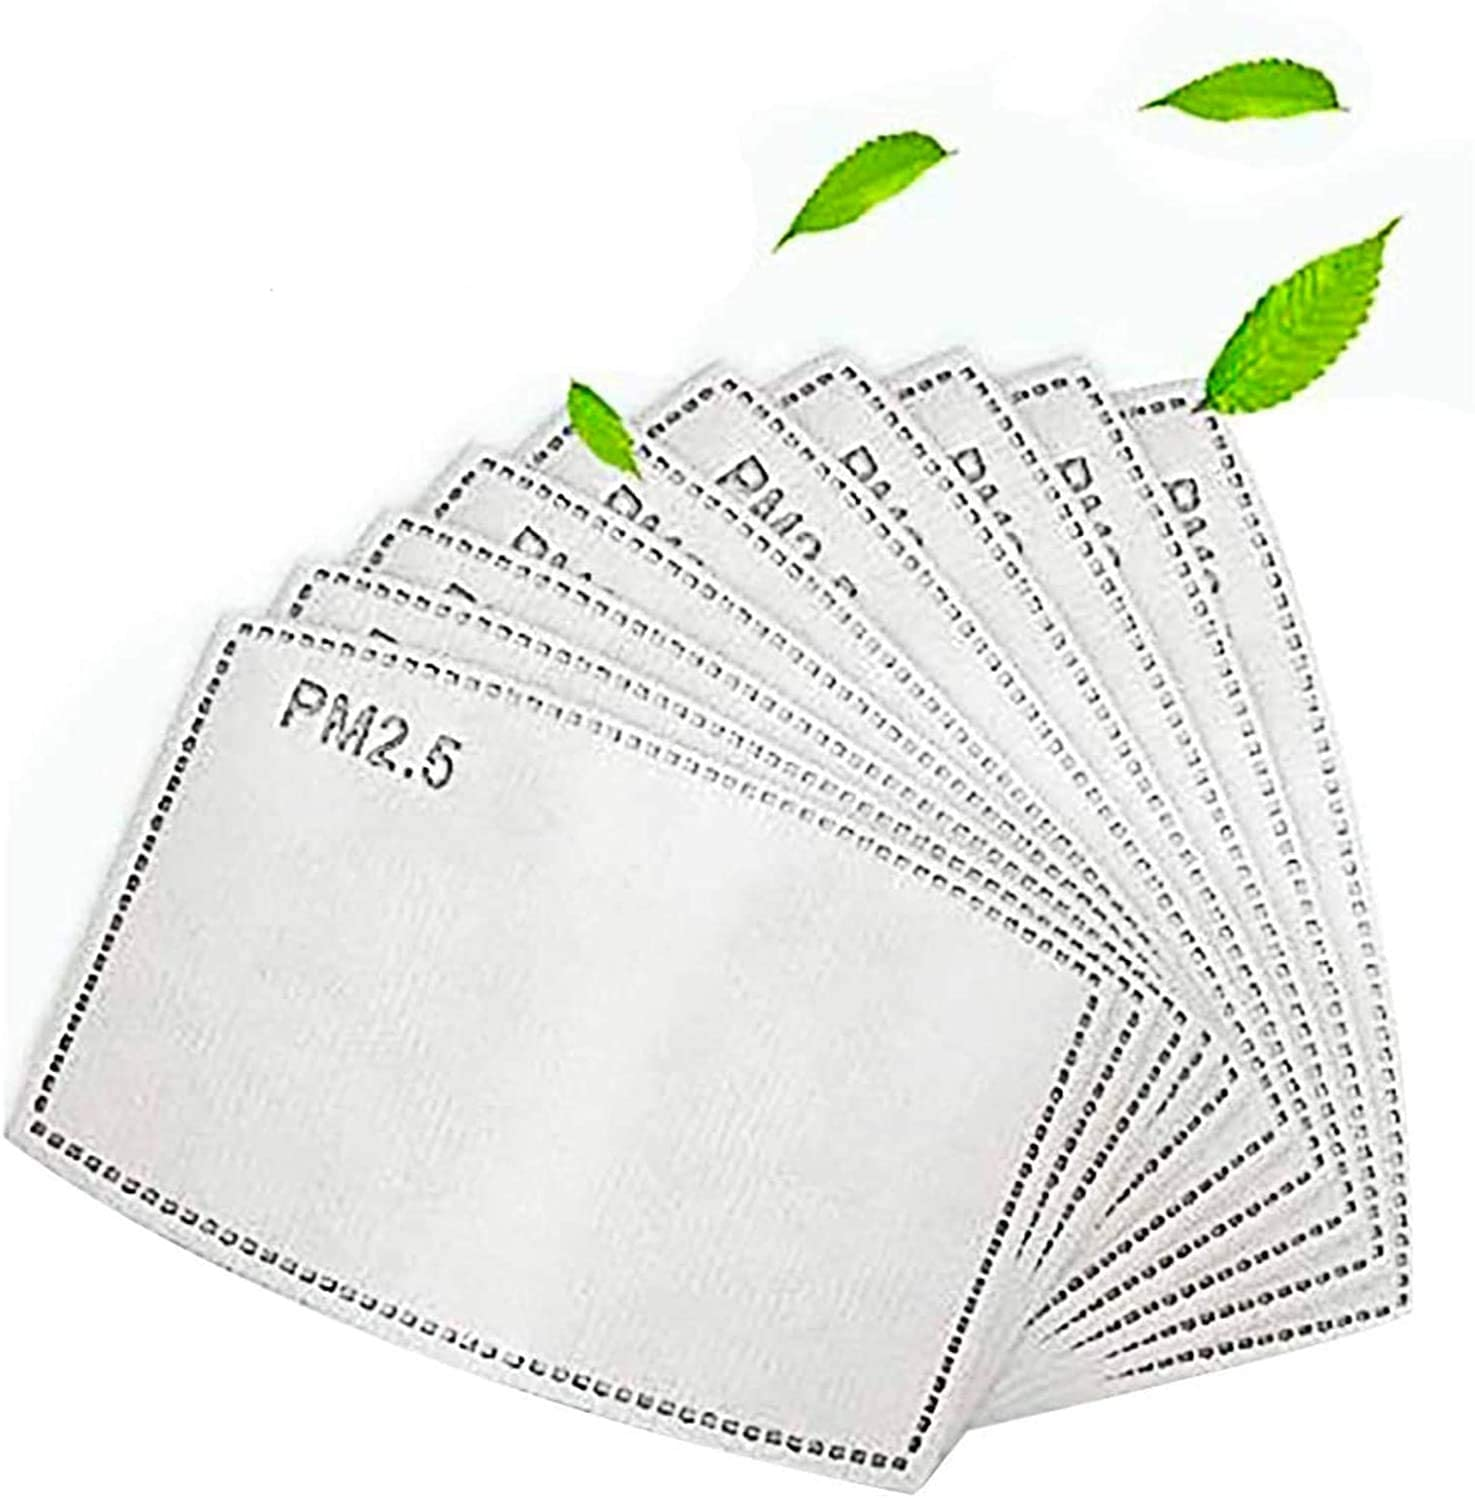 20 PCS Filter Element 5 layer Filter Activated Carbon Filter Pad for Outdoor Sport Home